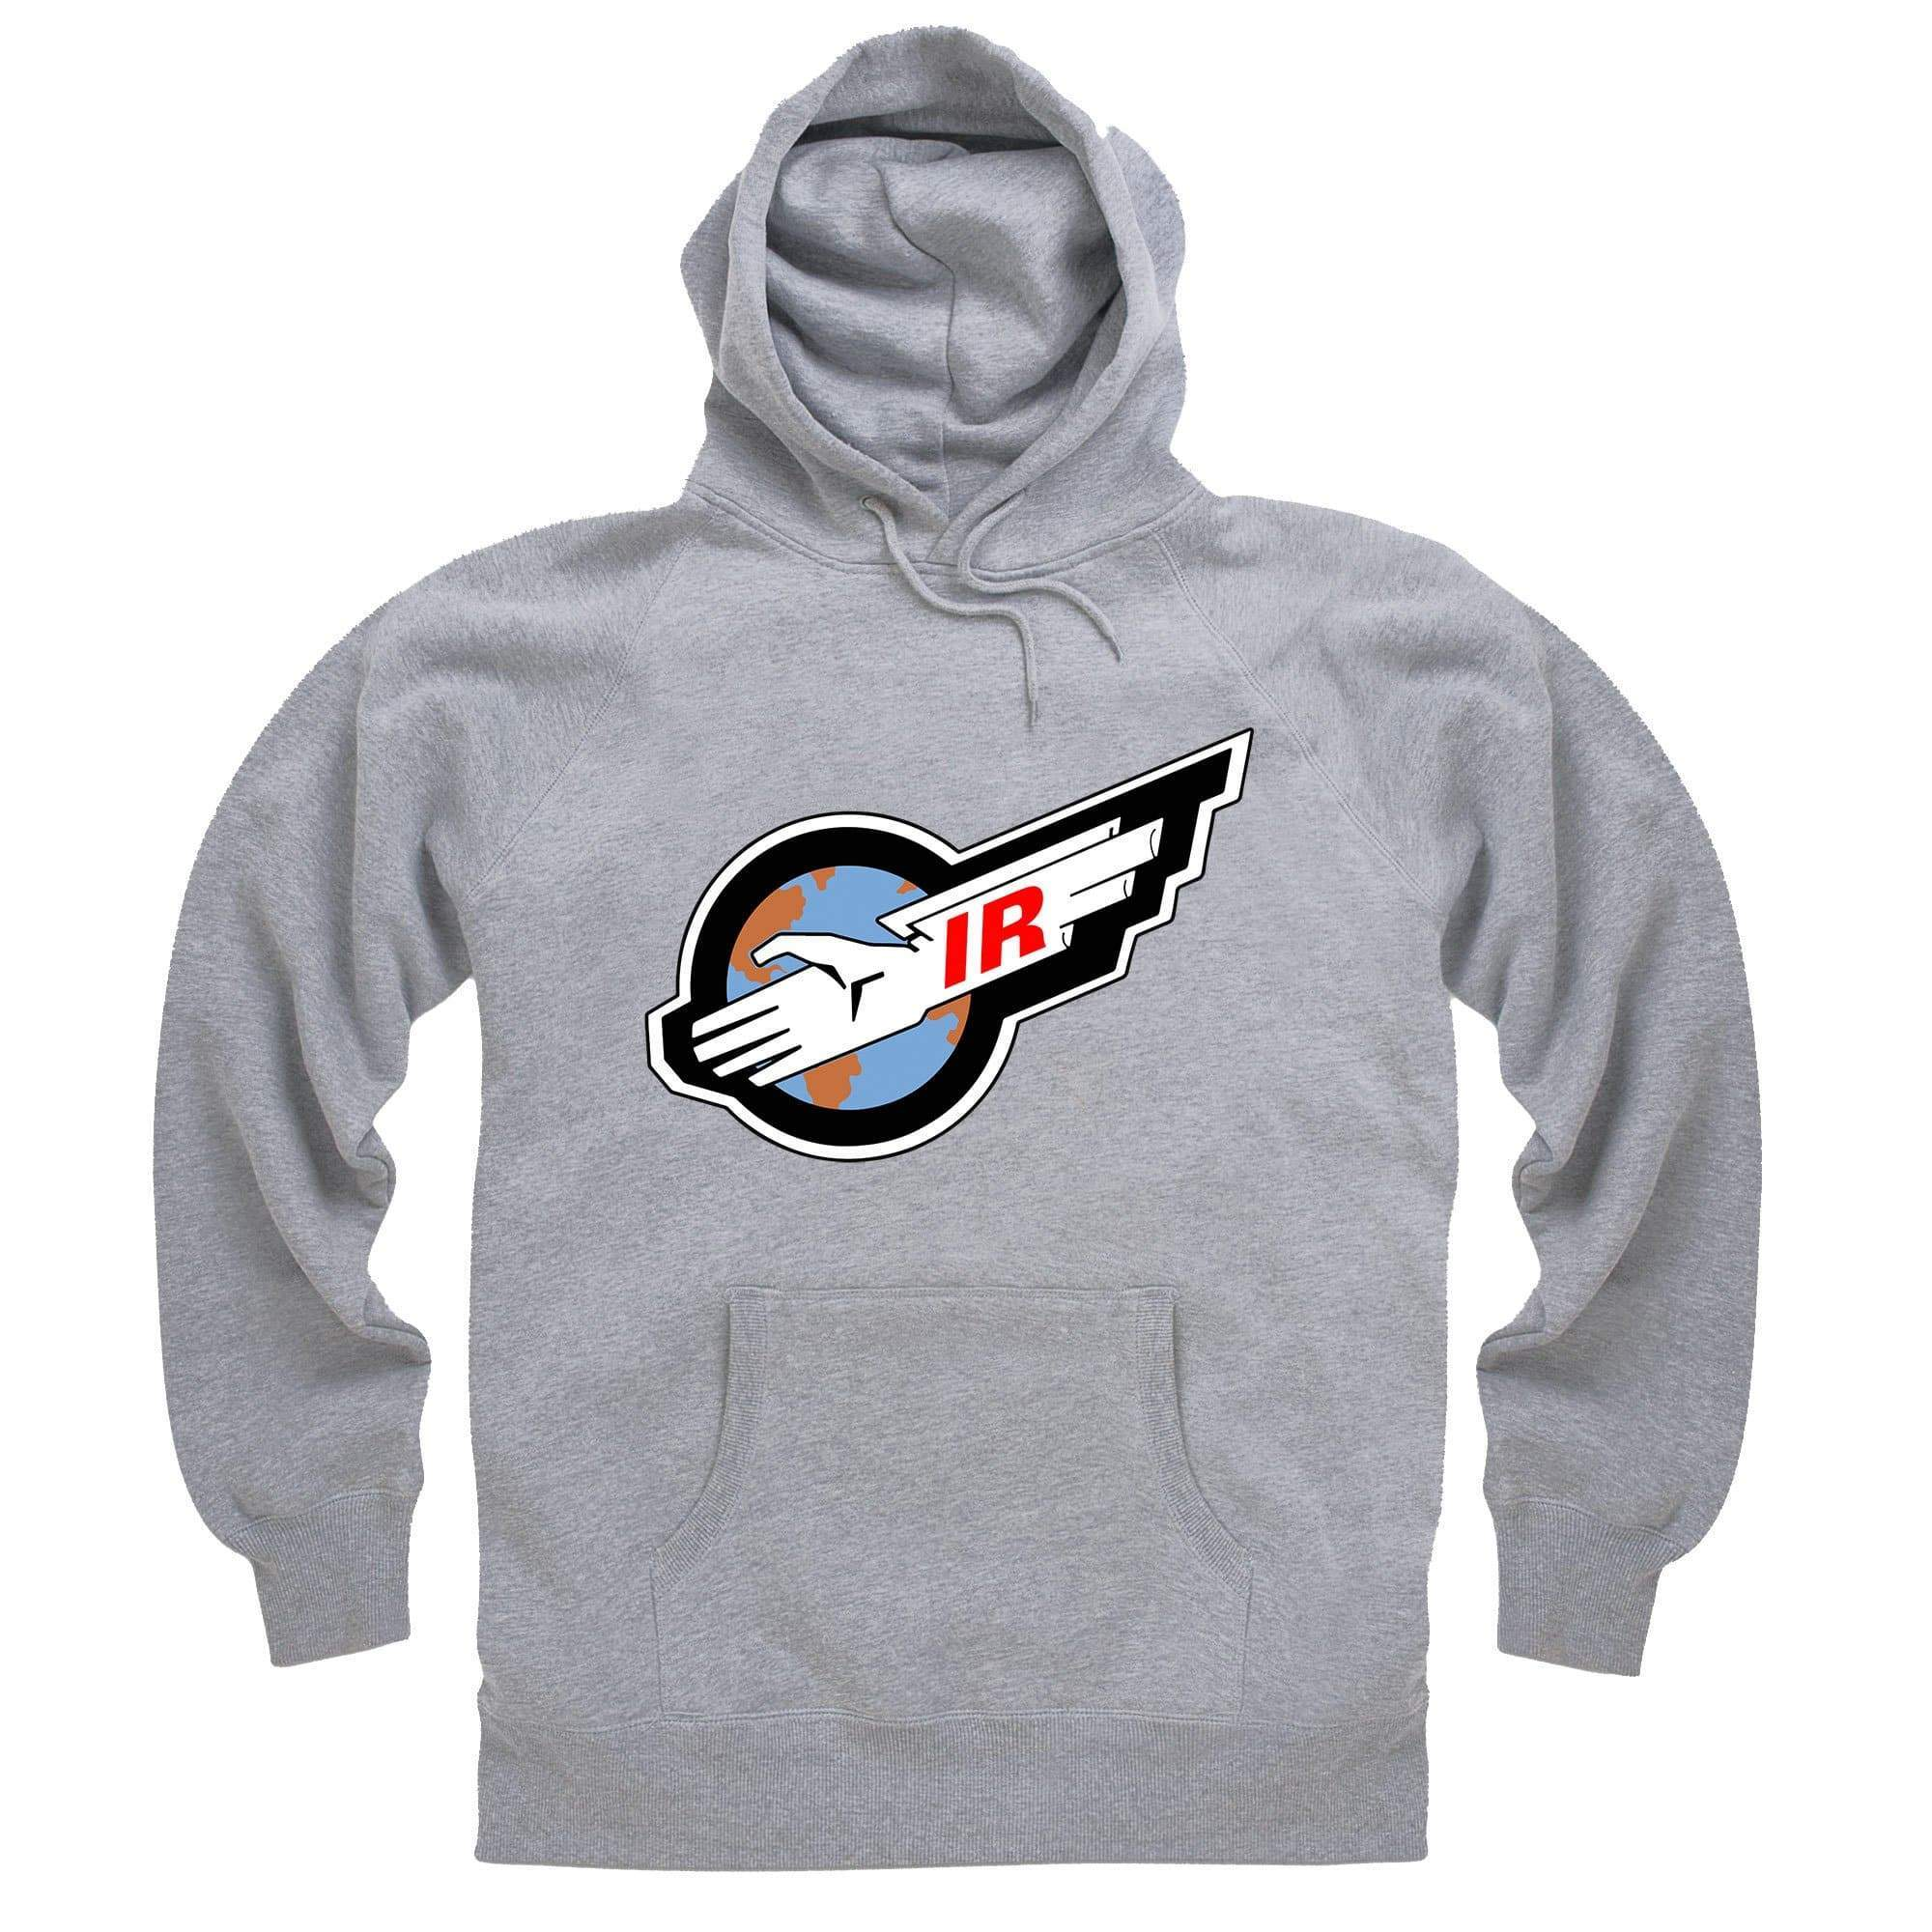 International Rescue/Thunderbirds Hoodie [Official & Exclusive] - The Gerry Anderson Store